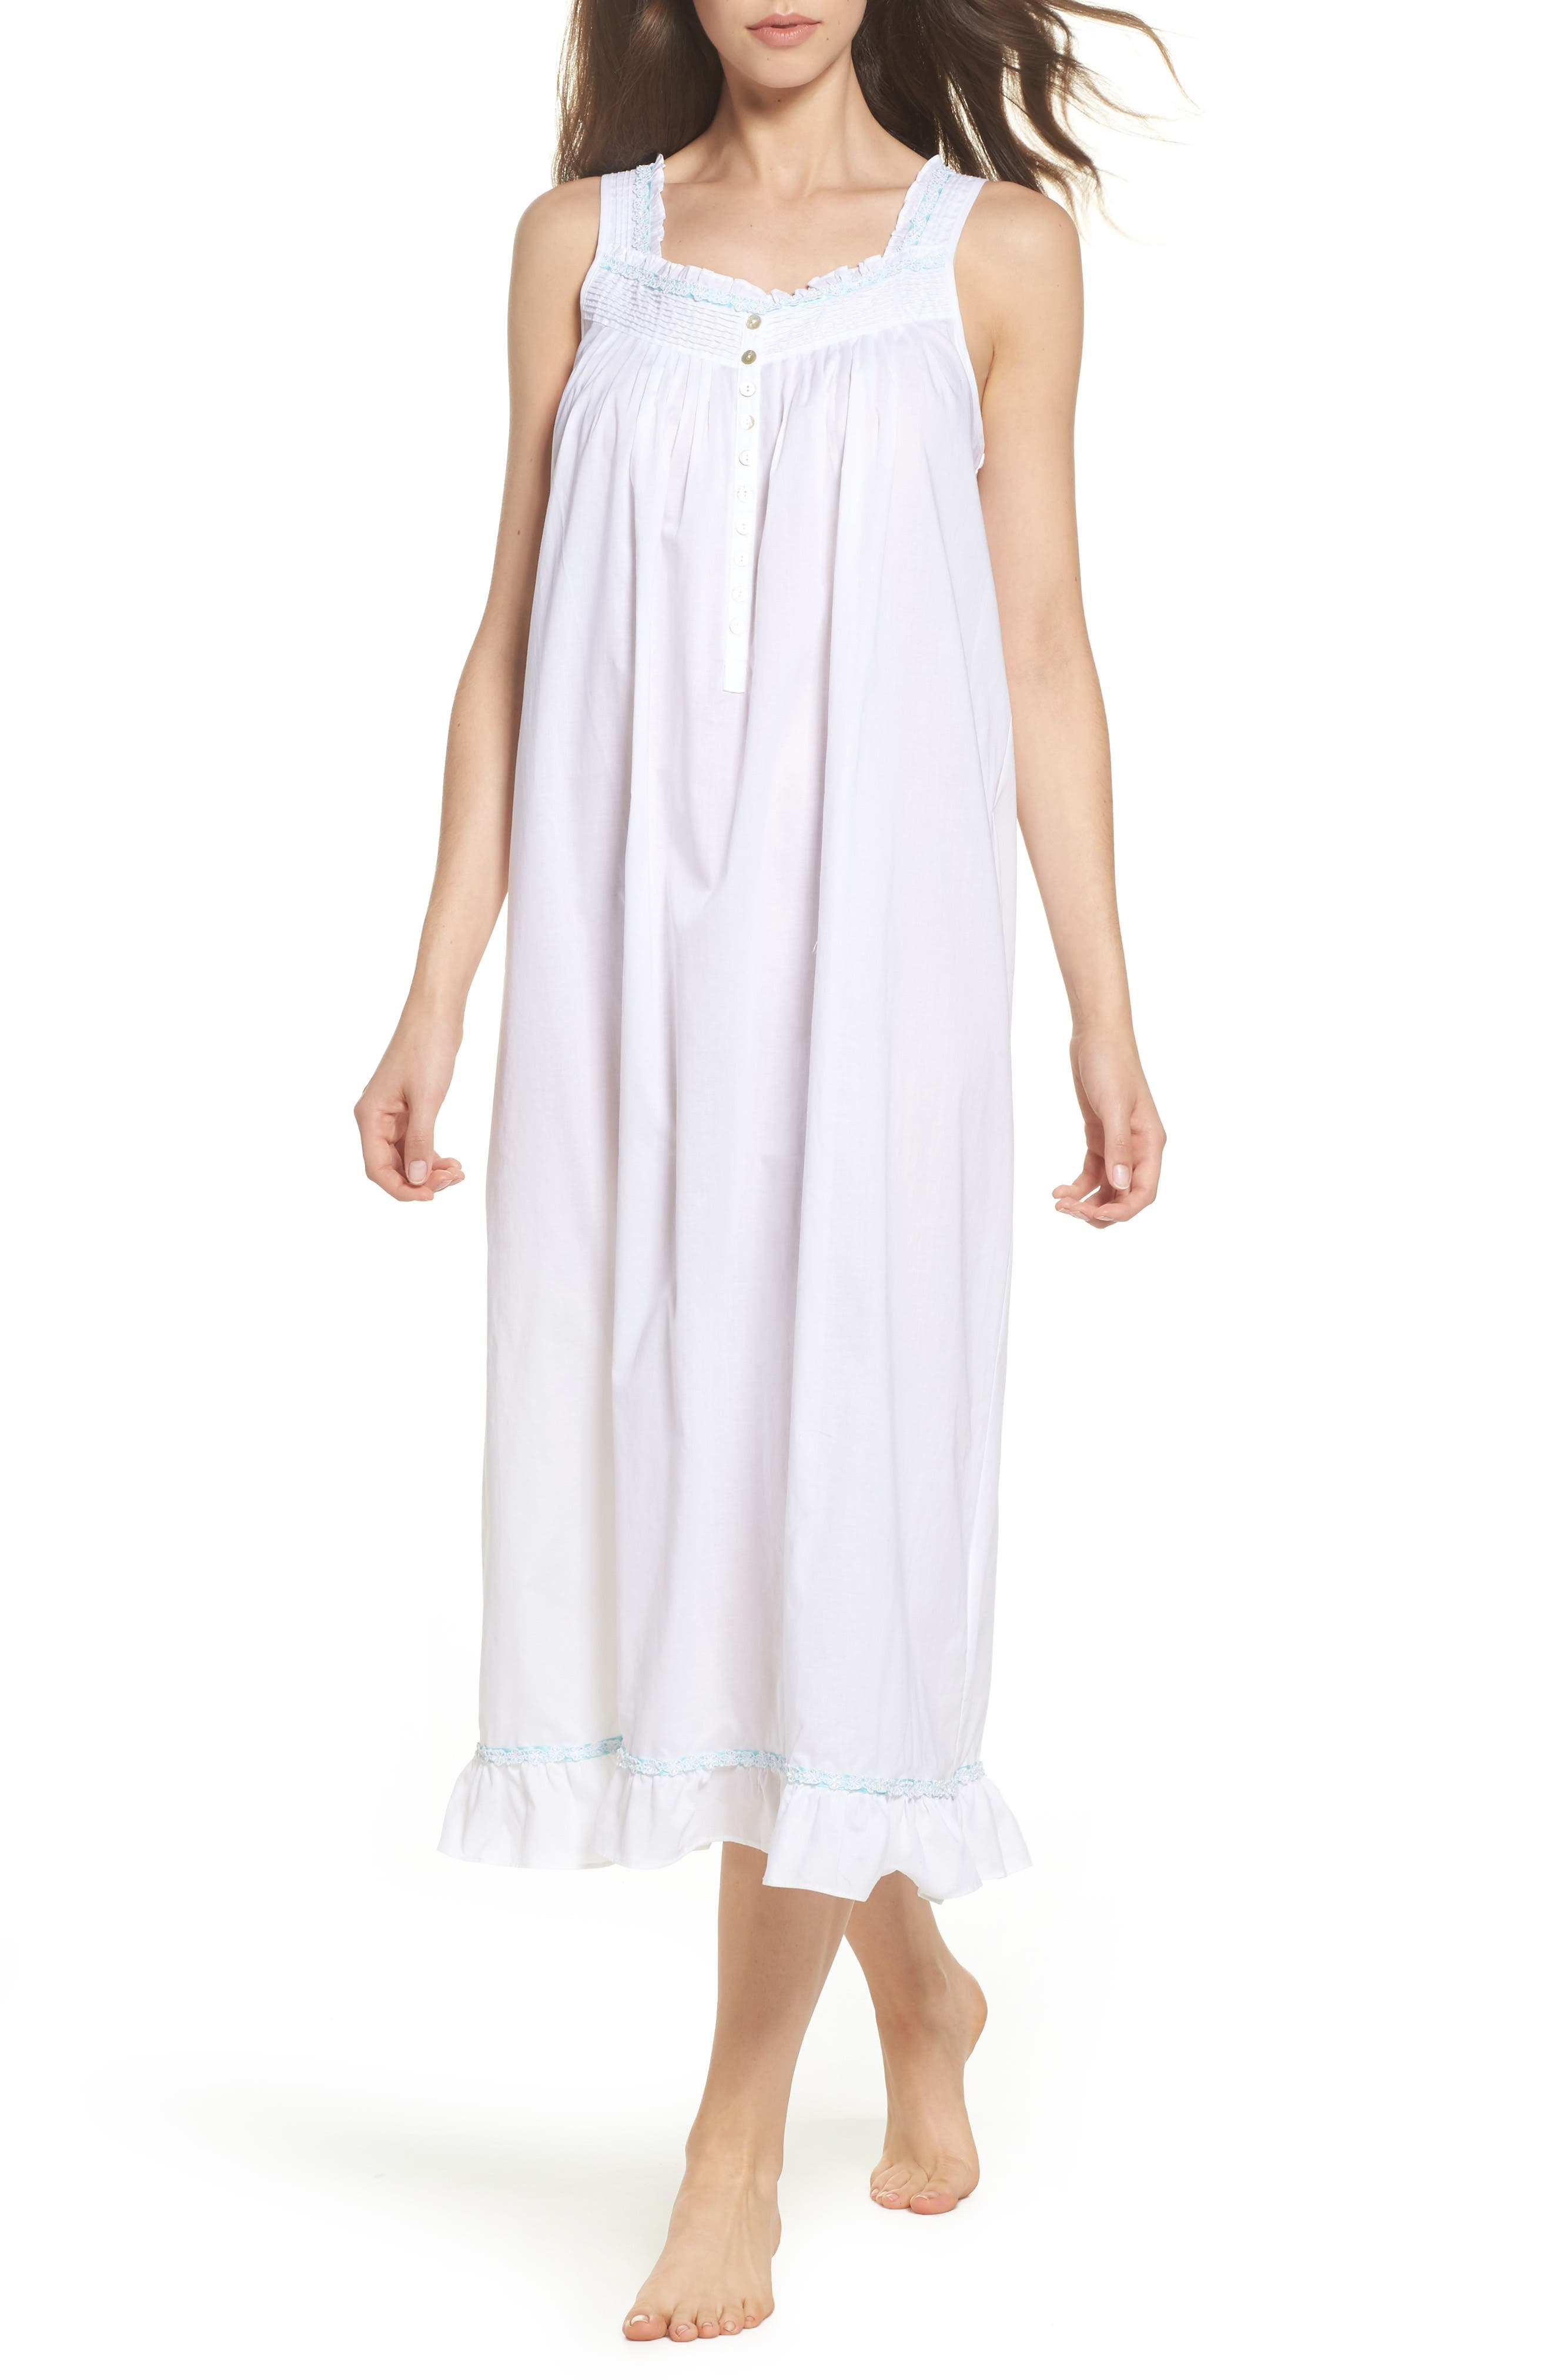 Cotton Lawn Ballet Nightgown,                             Main thumbnail 1, color,                             Solid White